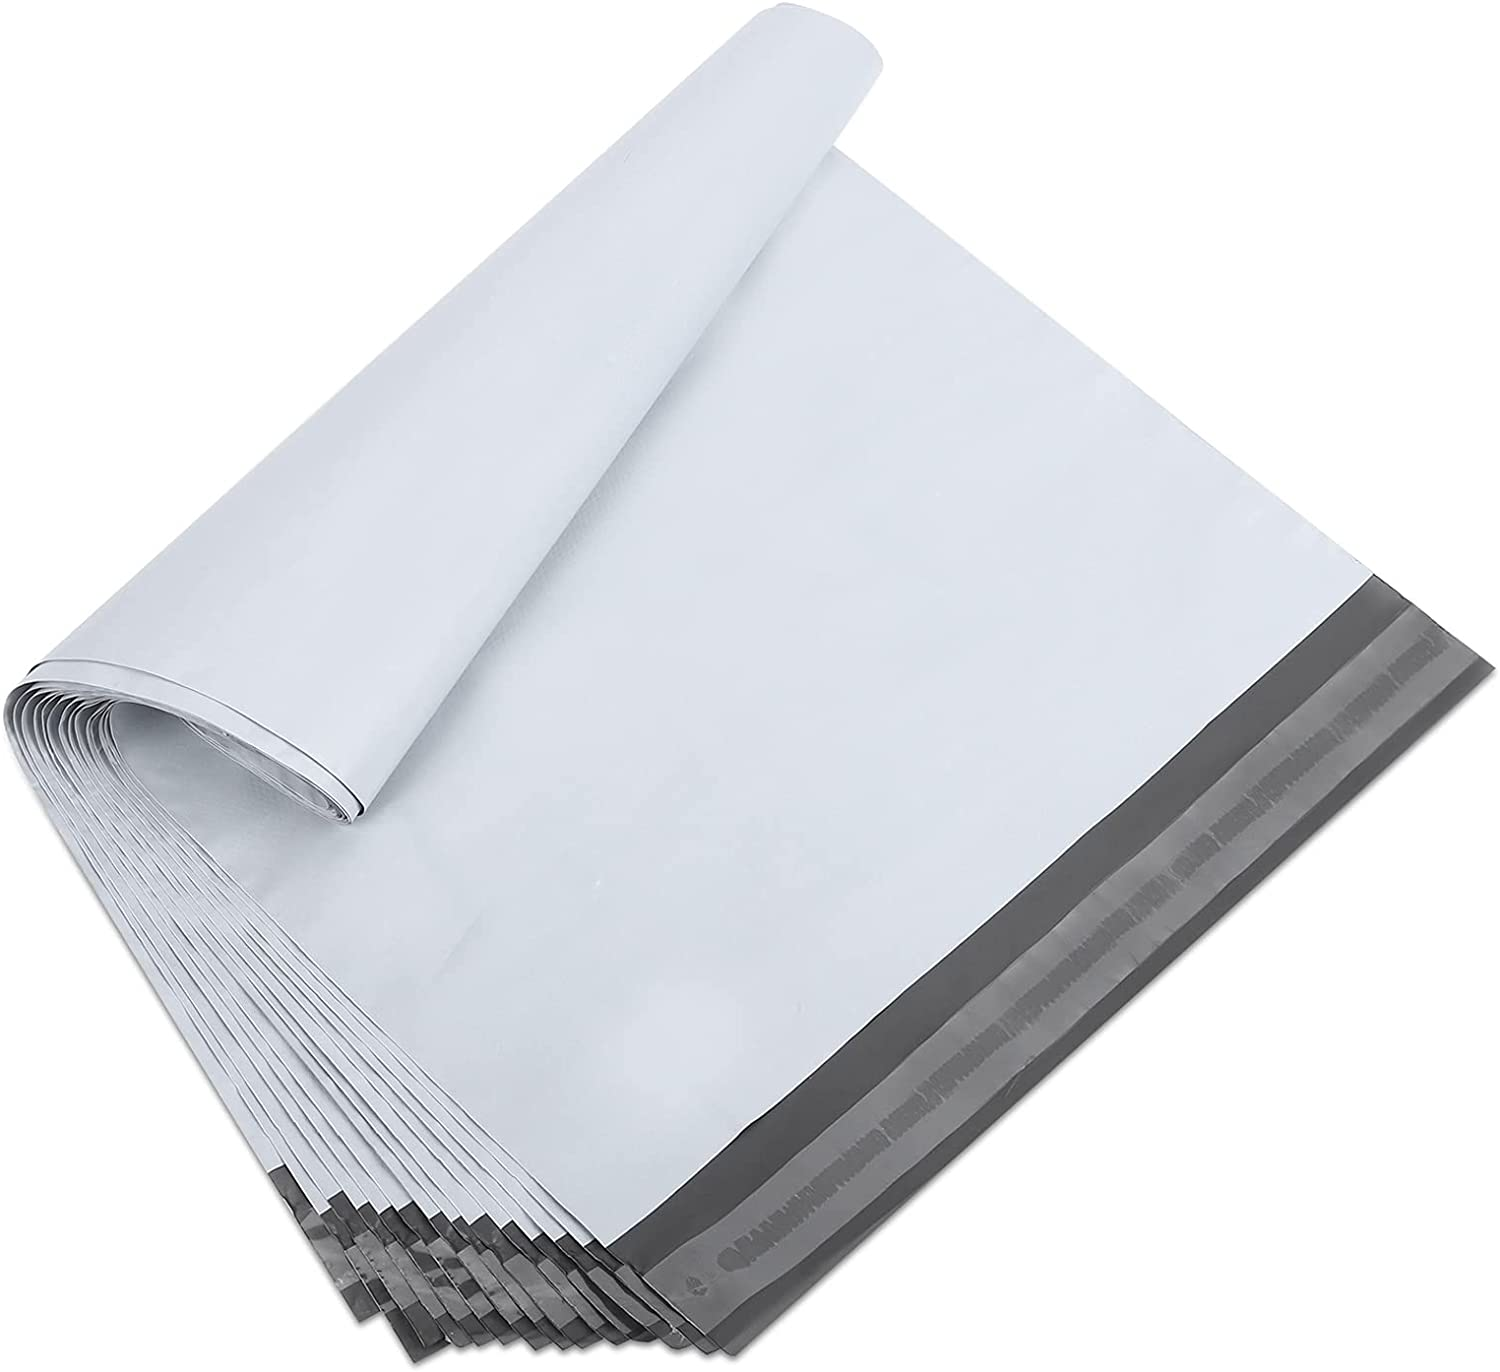 10x13 Inch White free shipping Poly Rare Mailers Self-adhes Envelopes Bags Shipping